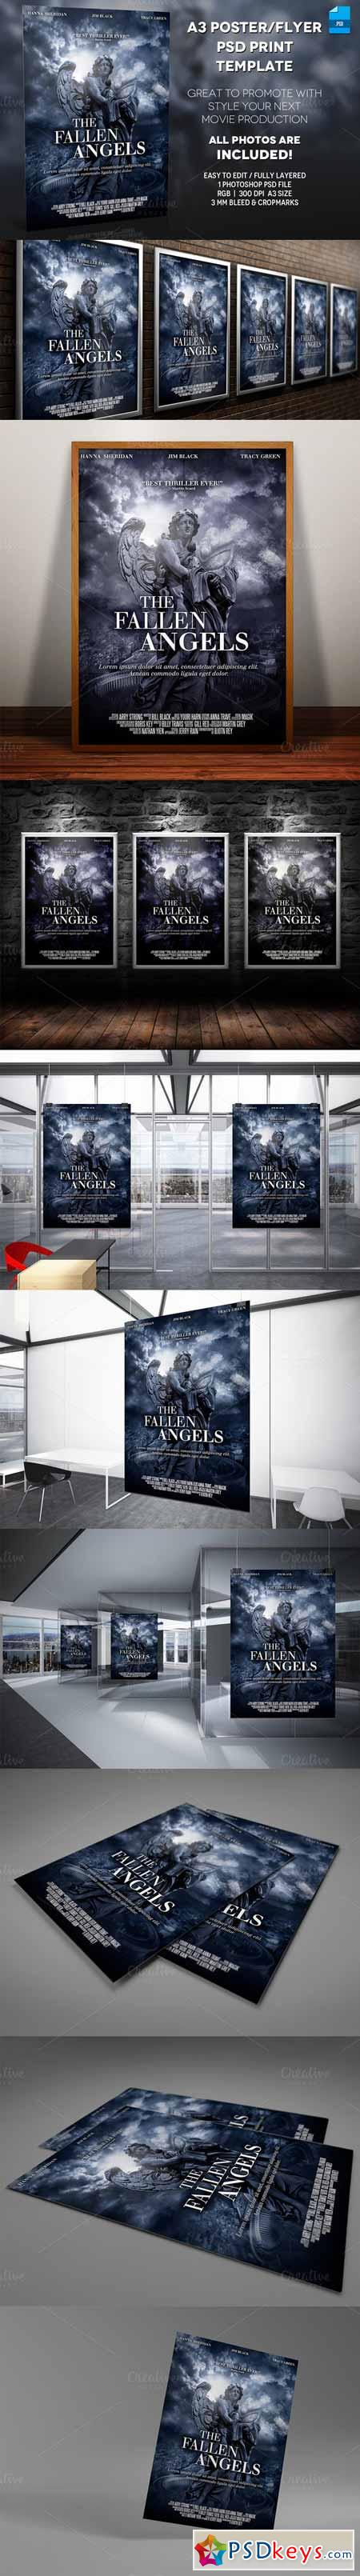 A3 - Movie Poster Print Template 2 381841 » Free Download